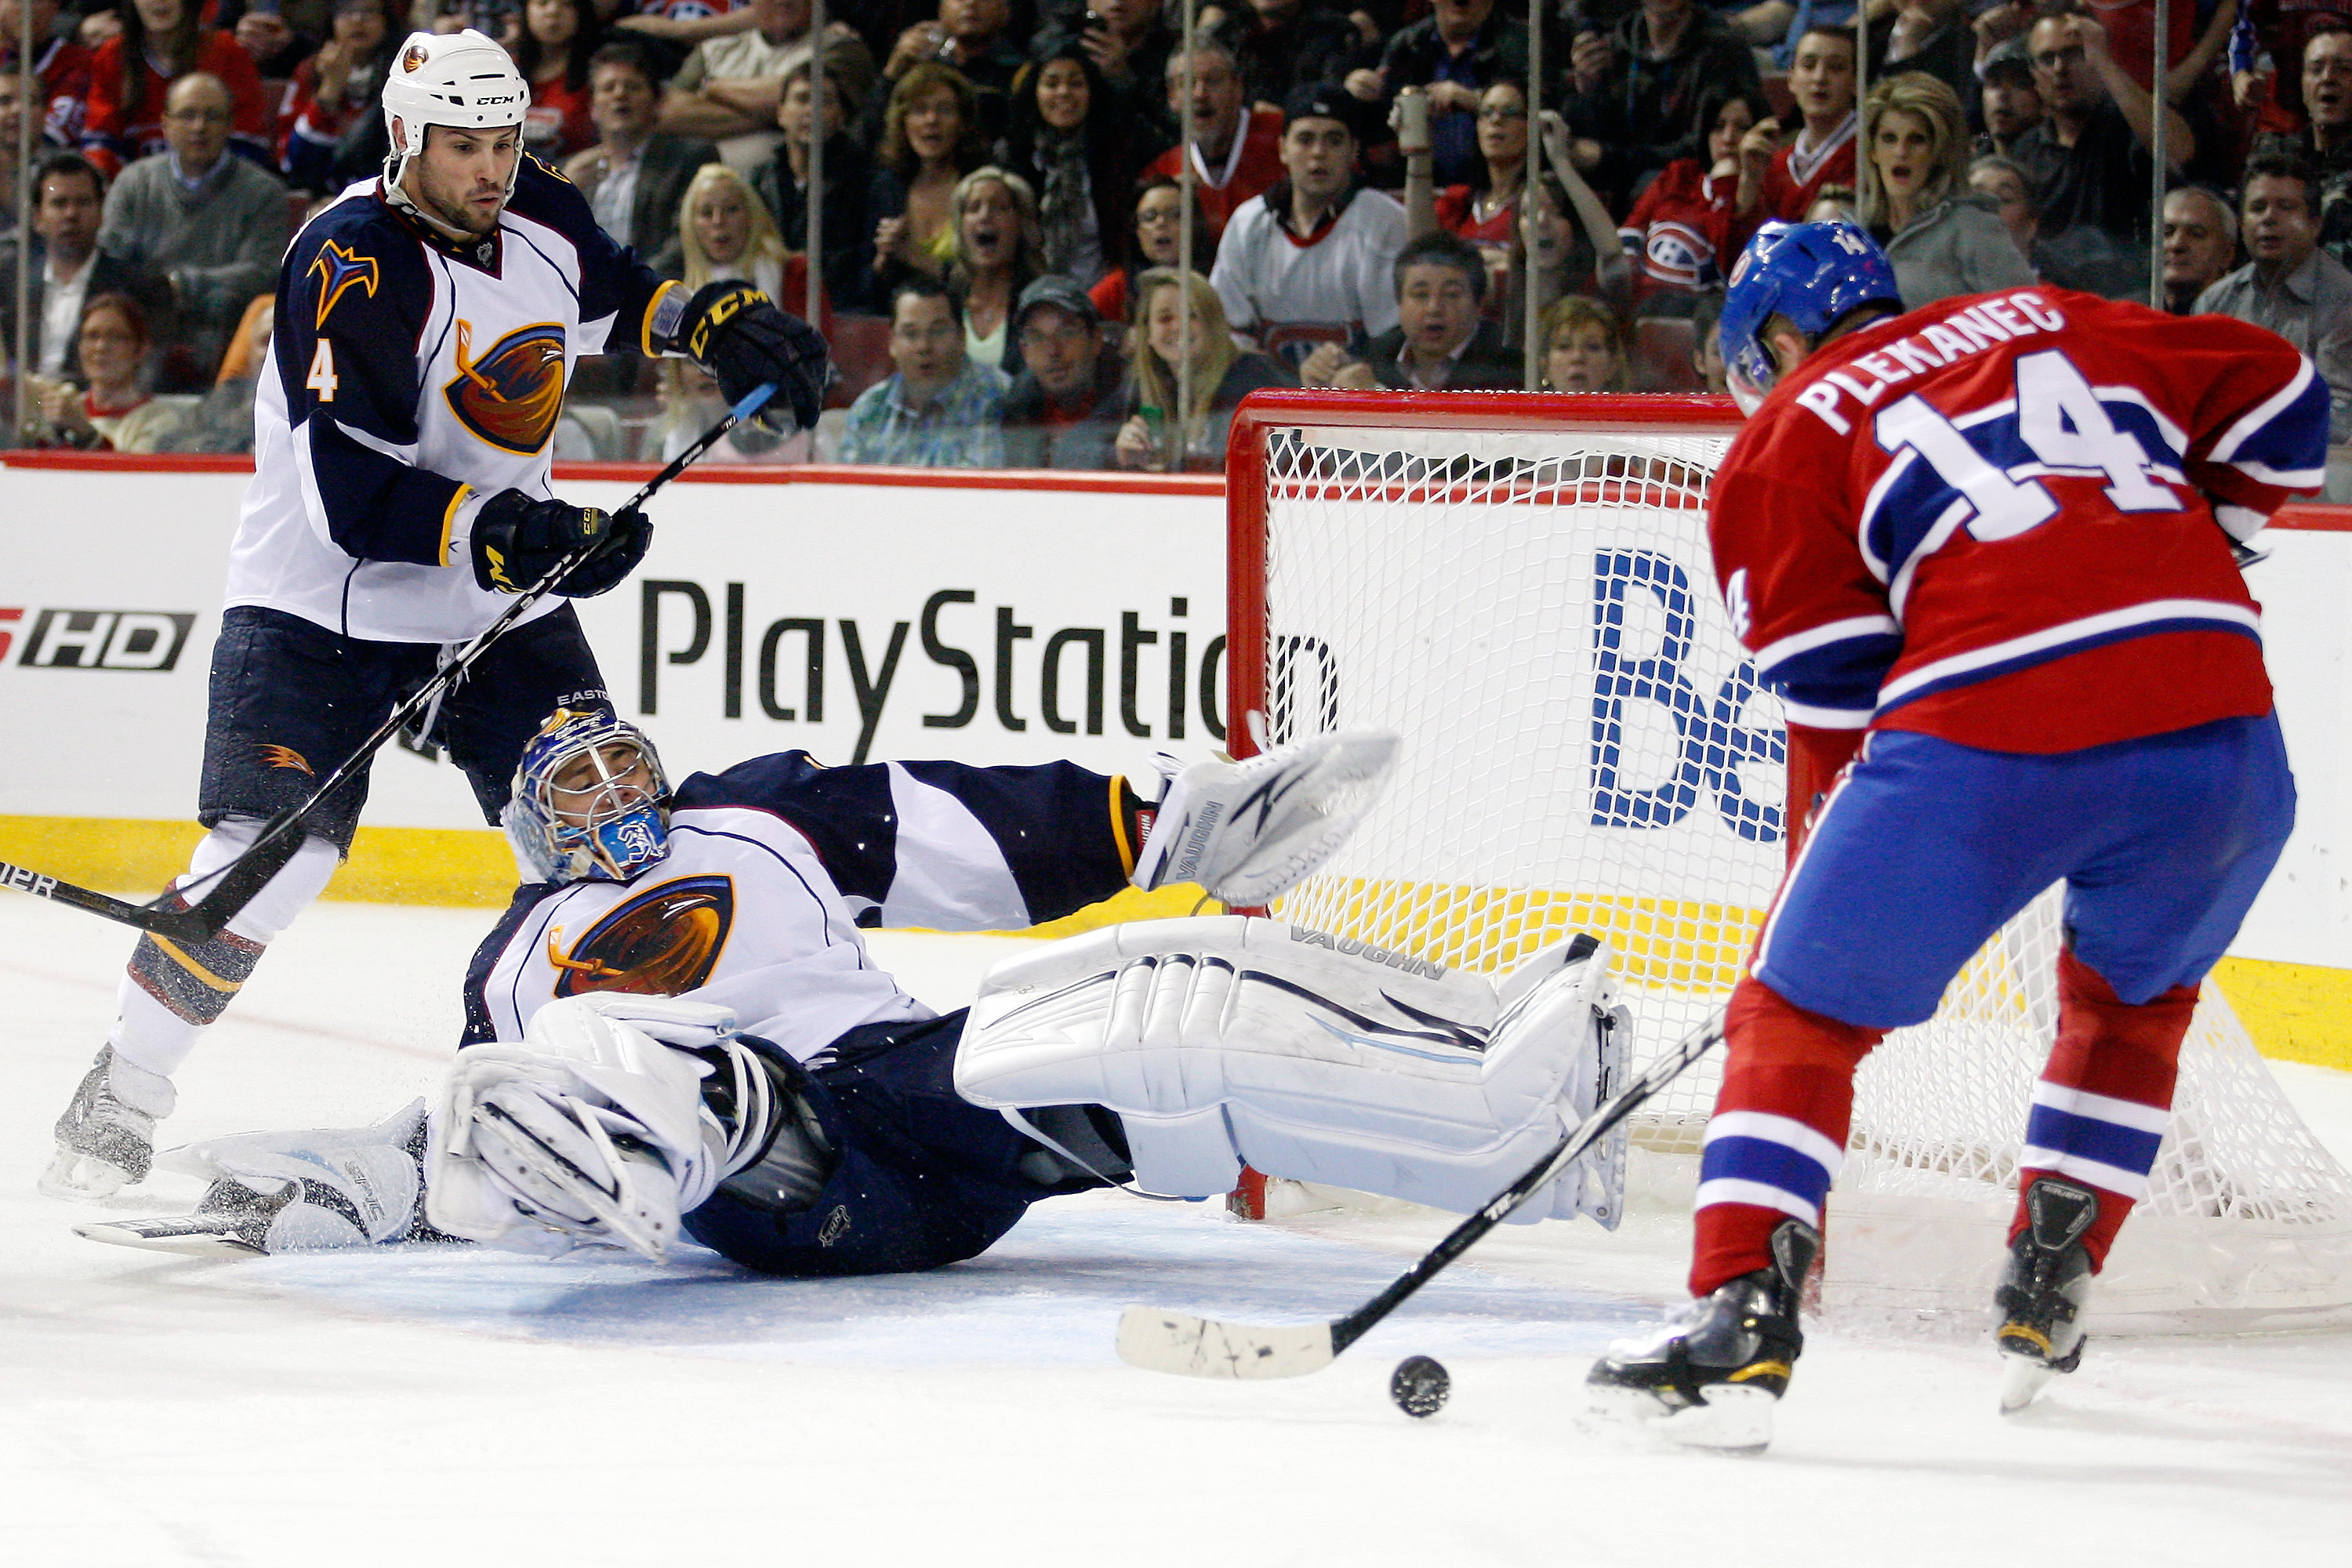 MONTREAL, CANADA - MARCH 29:  Tomas Plekanec #14 of the Montreal Canadiens gets the rebounding puck in front of Ondrej Pavelec #31 of the Atlanta Thrashers during the NHL game at the Bell Centre on March 29, 2011 in Montreal, Quebec, Canada.  (Photo by Ri